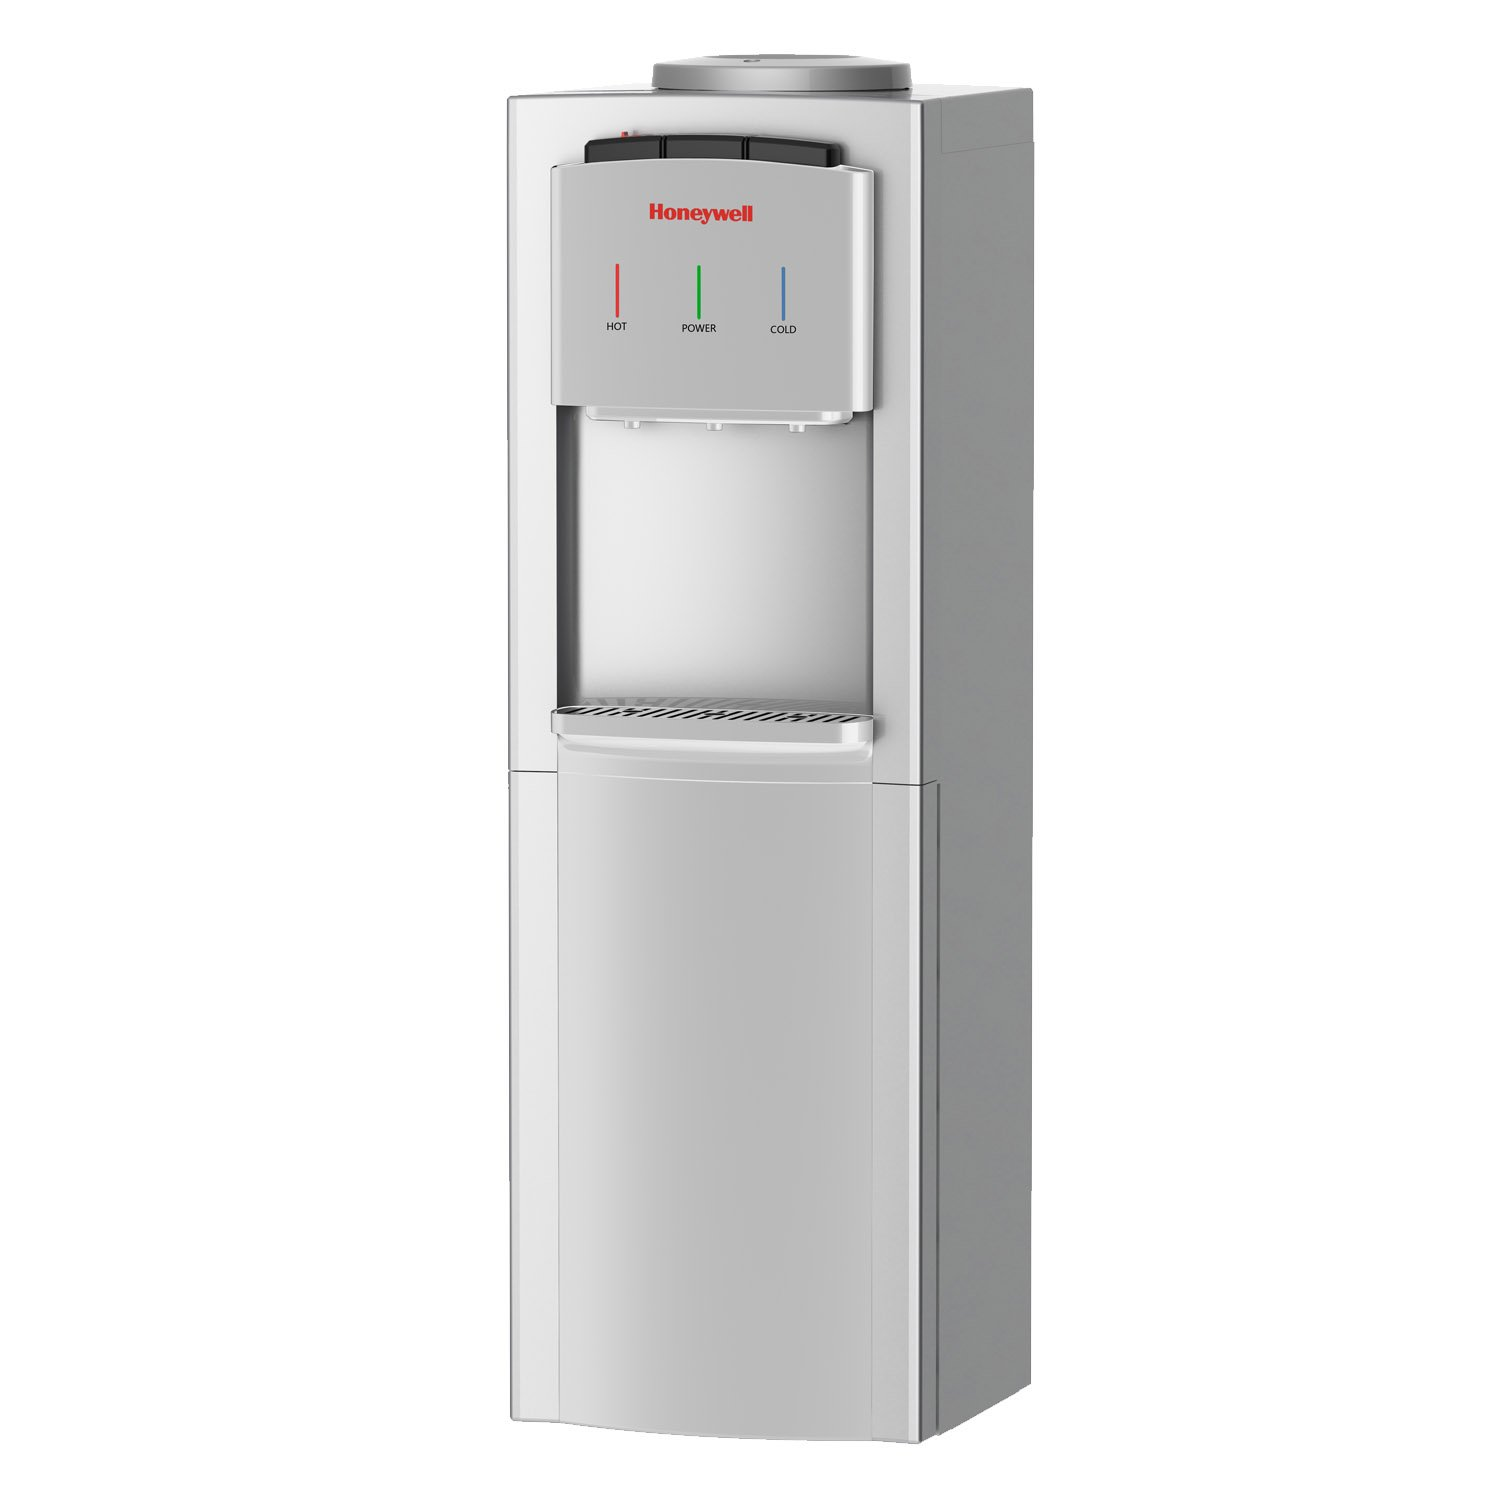 Honeywell HWB1033S2 41-Inch Cabinet Freestanding Hot, Cold & Room Water Dispenser with Stainless Steel Tank to help improve water taste, Back Handle for EASIER HANDLING, Silver